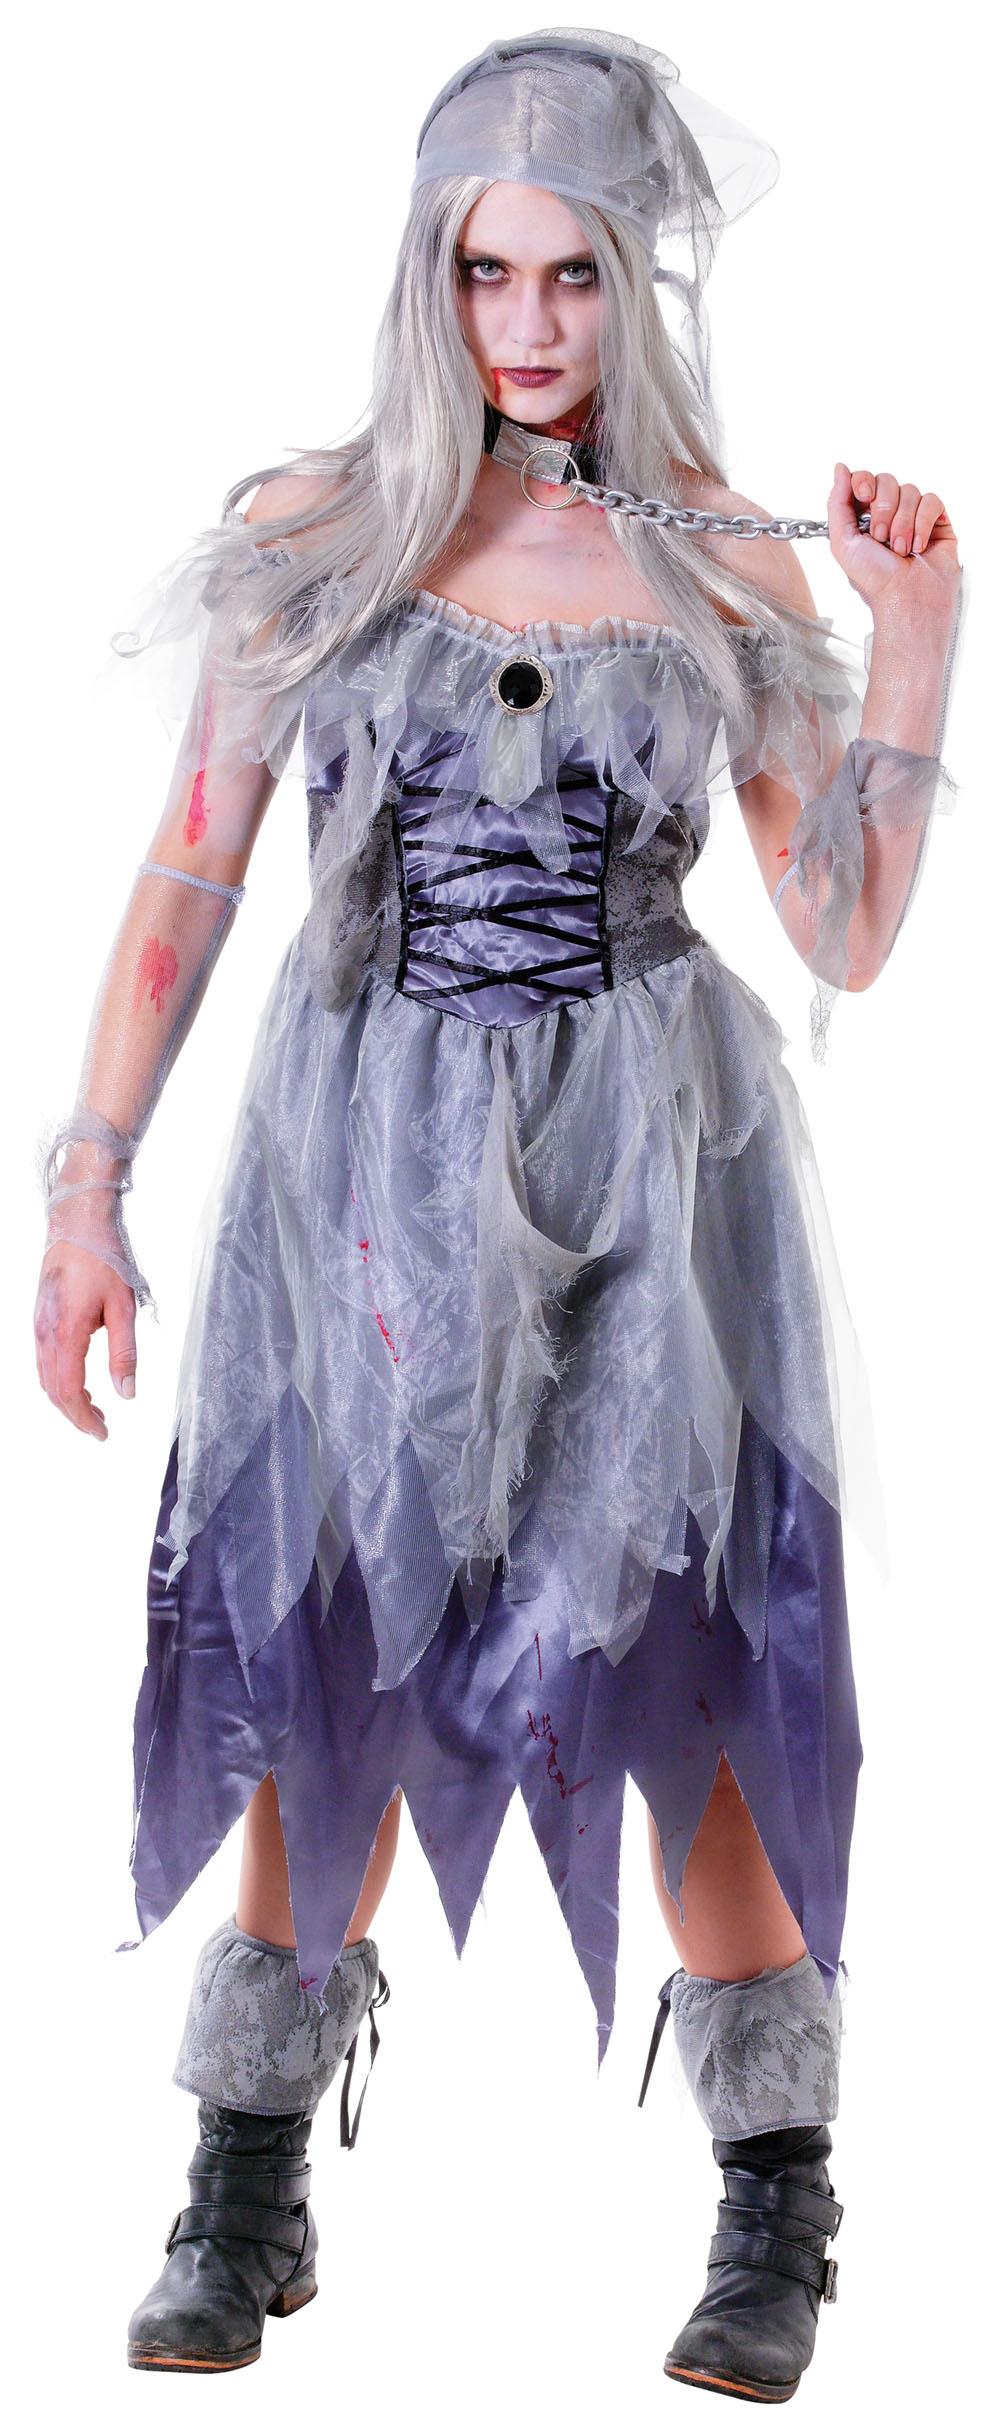 Ladies Pirate Scary Fancy Dress Costume Halloween Zombie Party Outfit UK 10-14